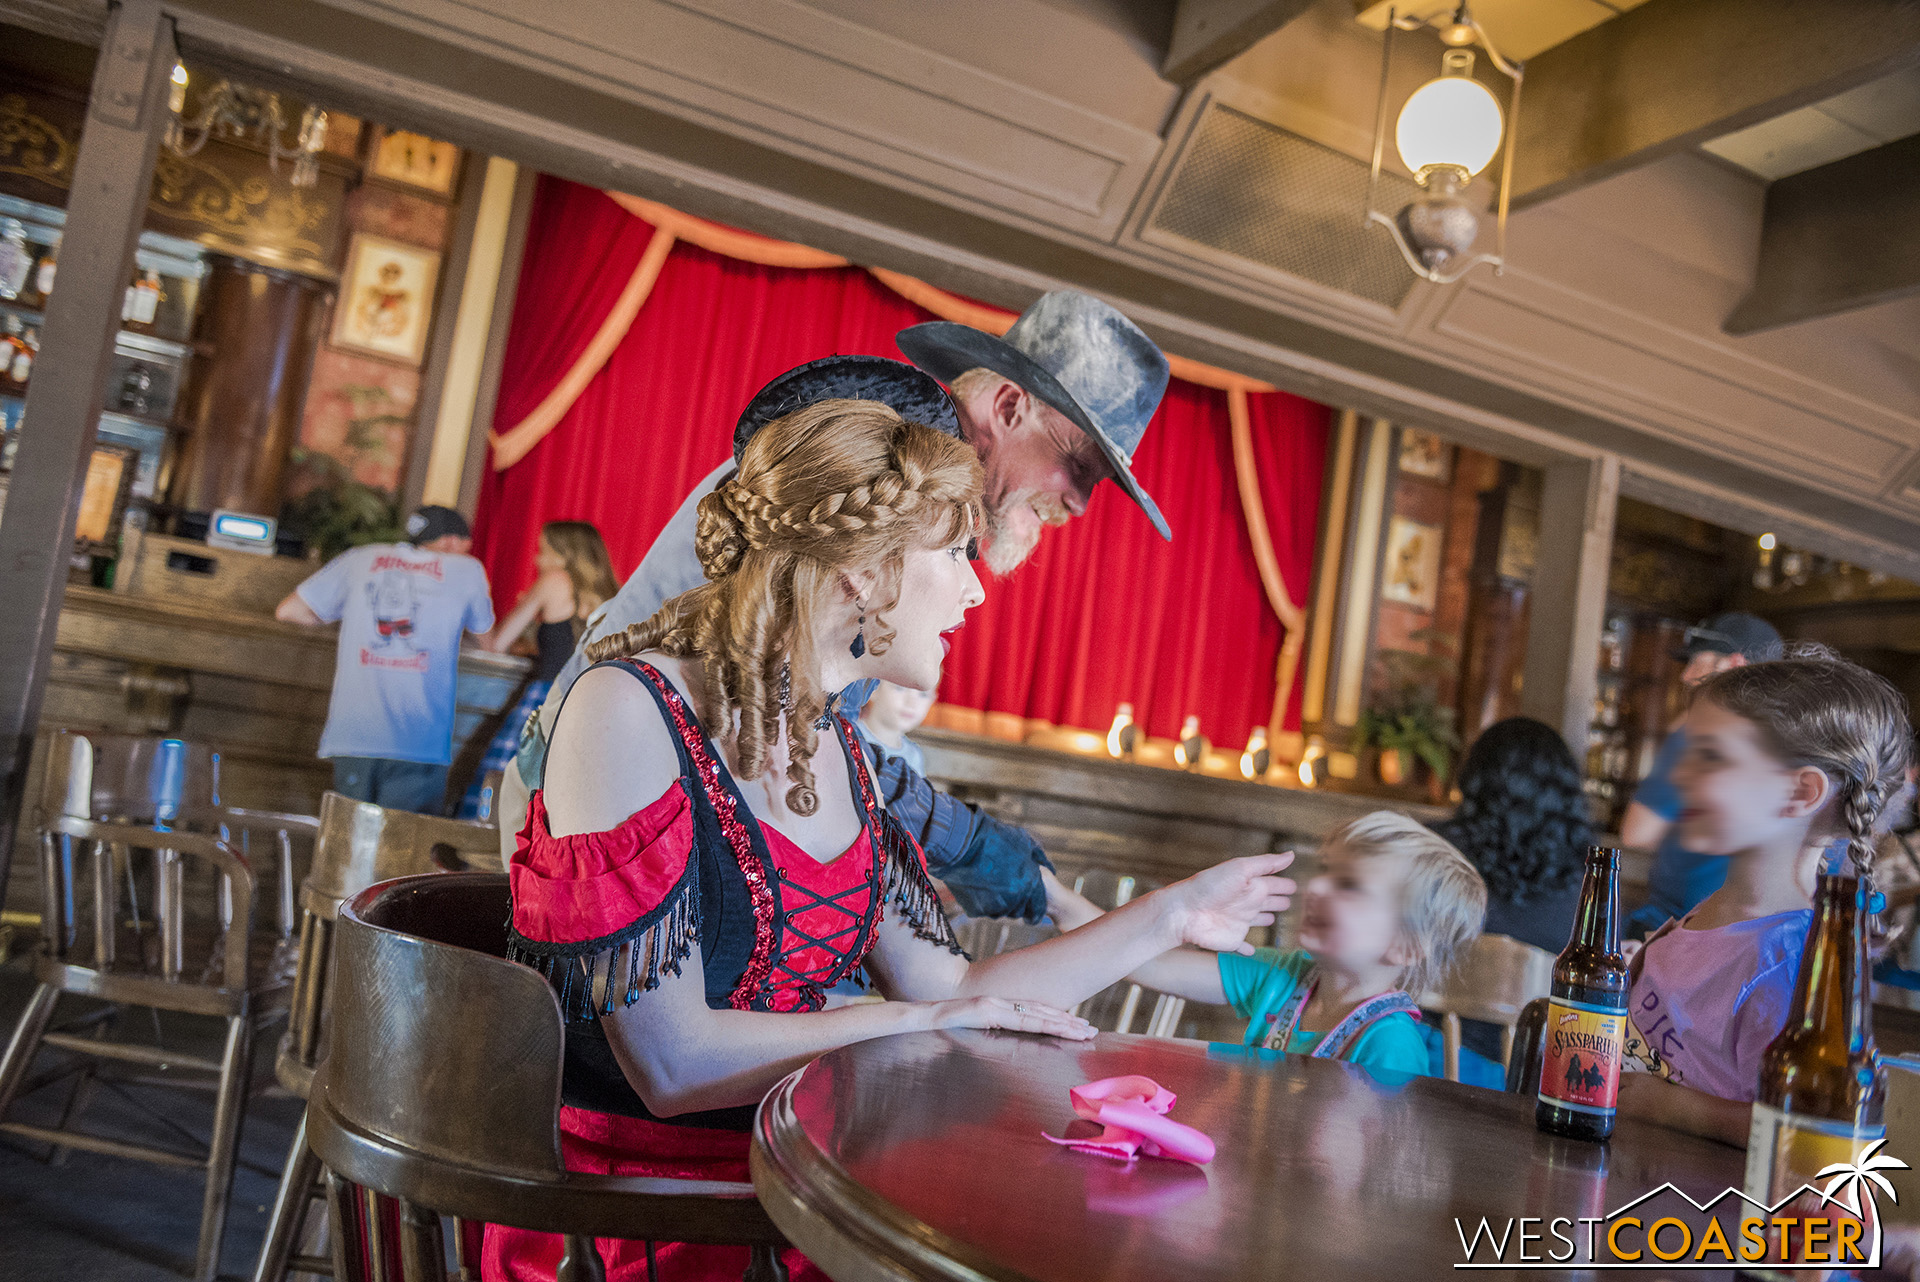 Violet Lee spends much of her time at the Calico Saloon these days.